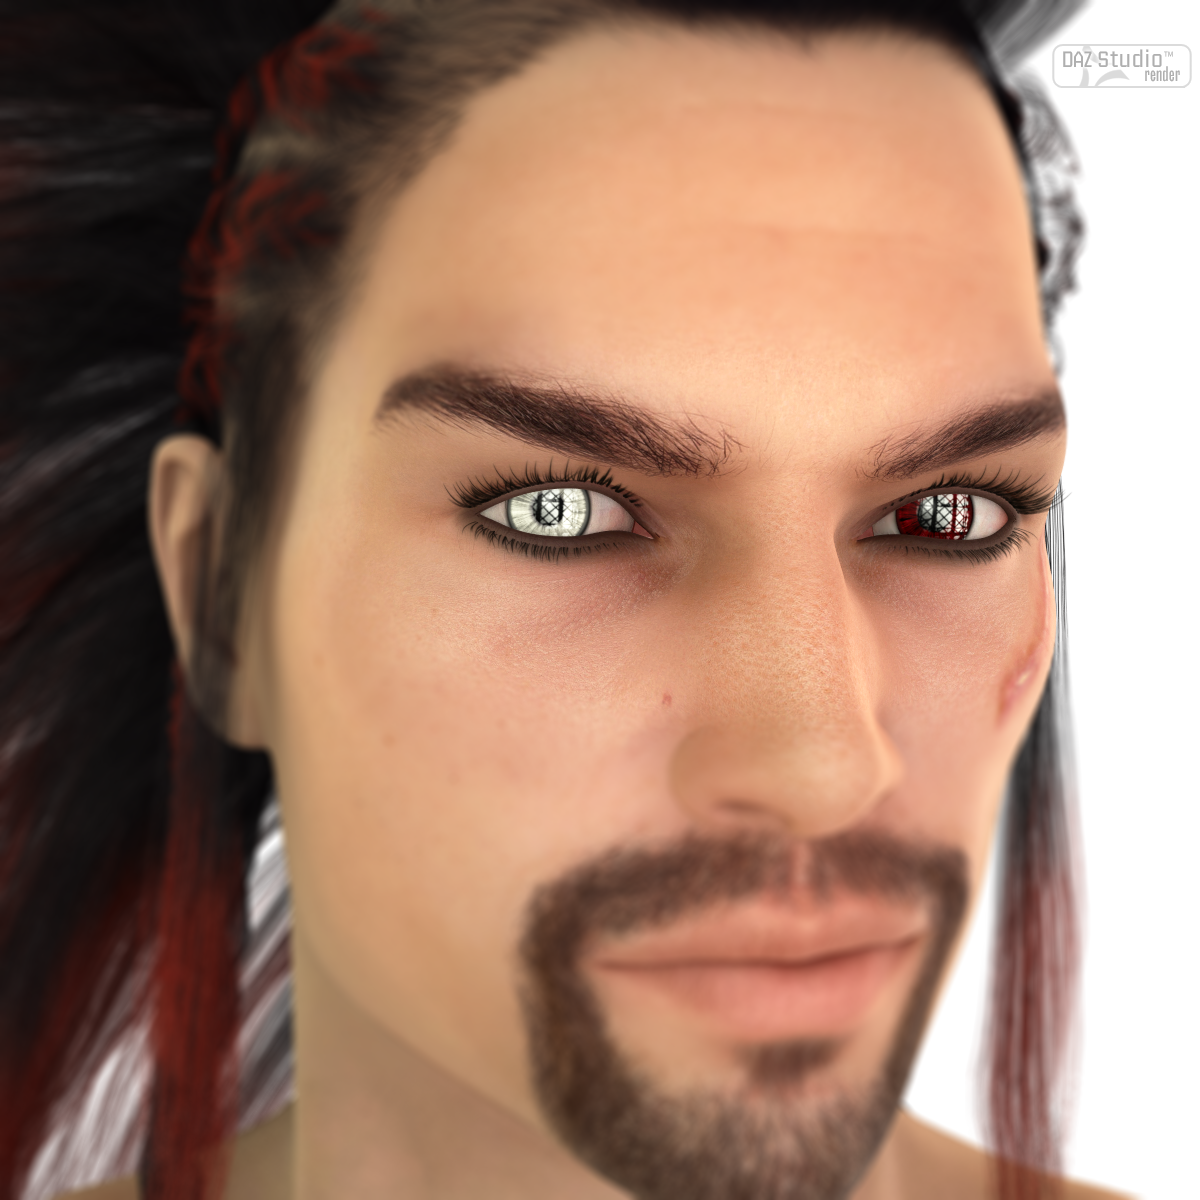 L.I.E. Eye Colors For Genesis 3 Male